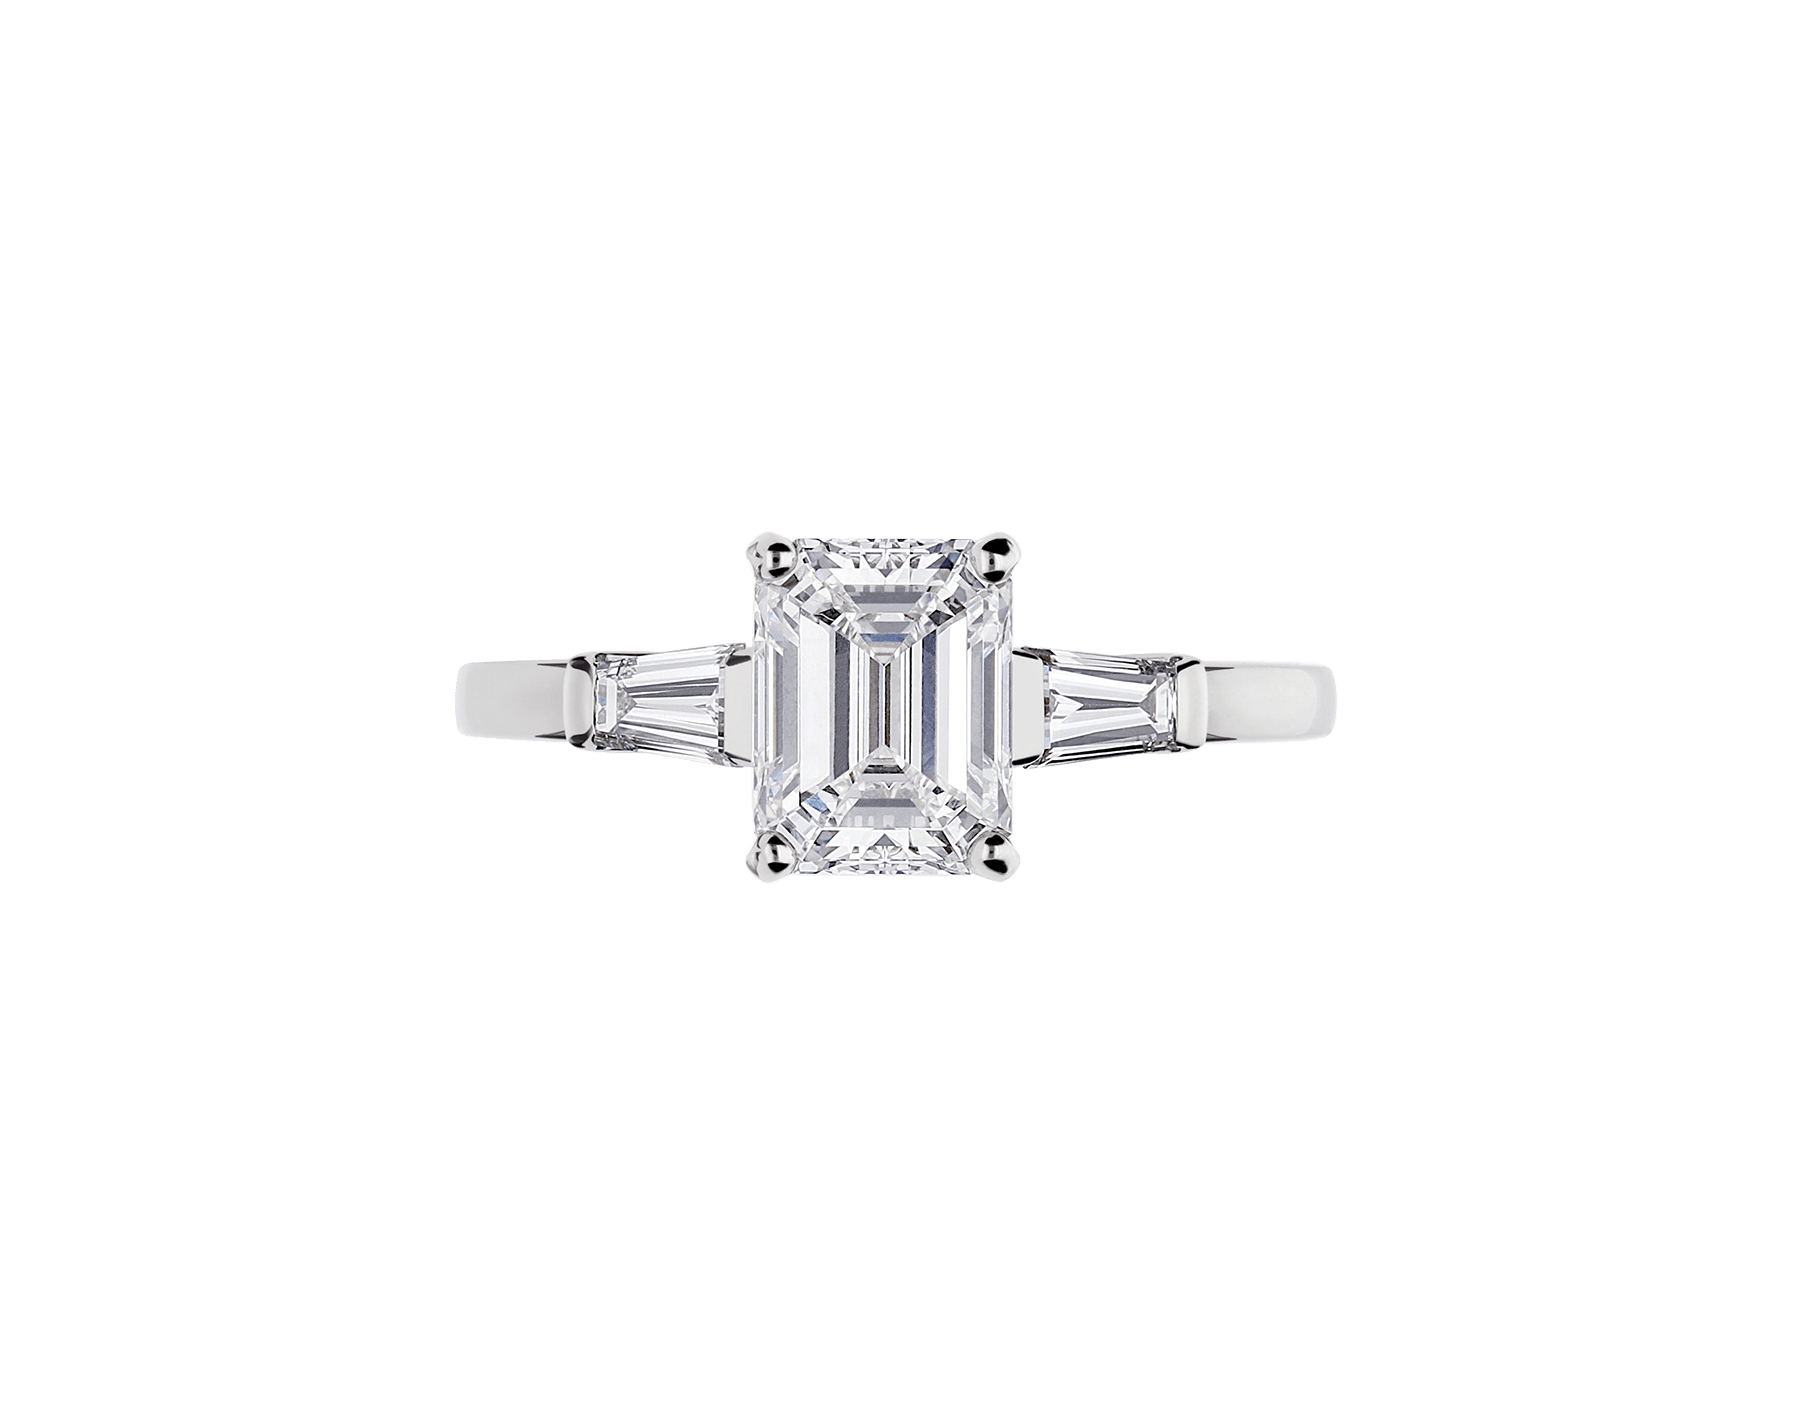 Griffe solitaire ring in platinum with one emerald cut diamond and two side diamonds 331649 image 3